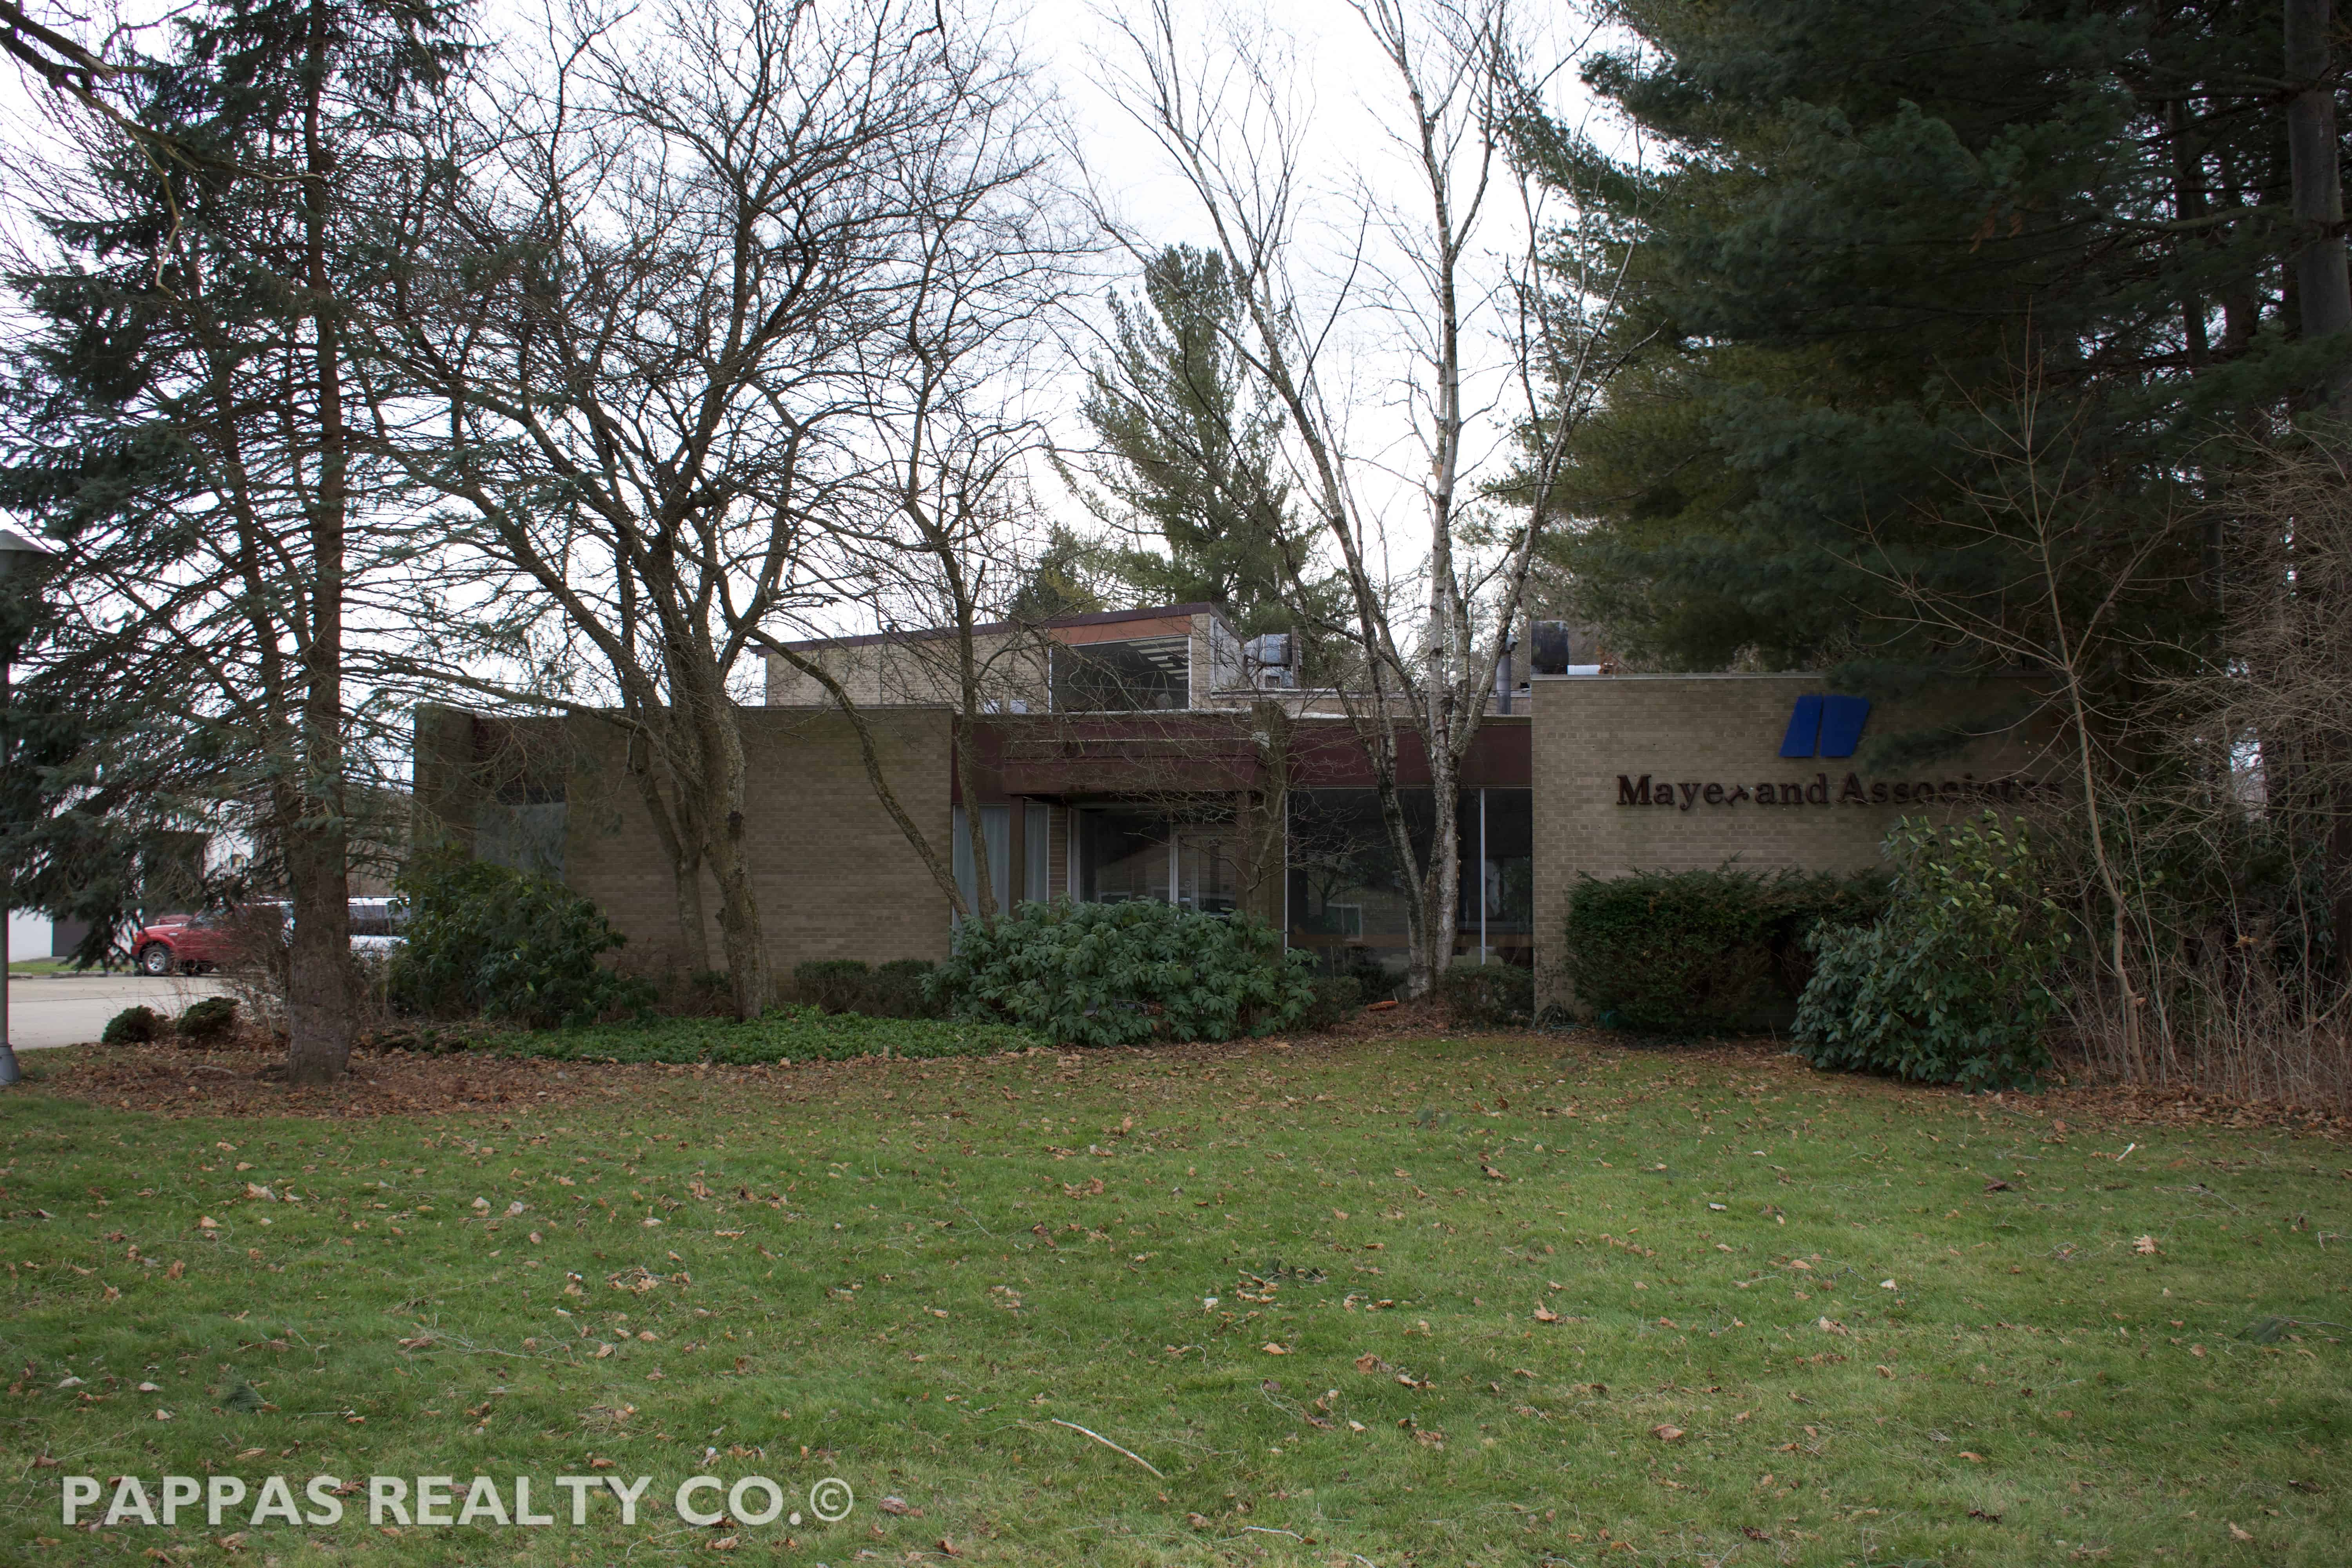 Pappas Realty Co. - Akron, OH - Flex Warehouse Office Space for Sale CRE